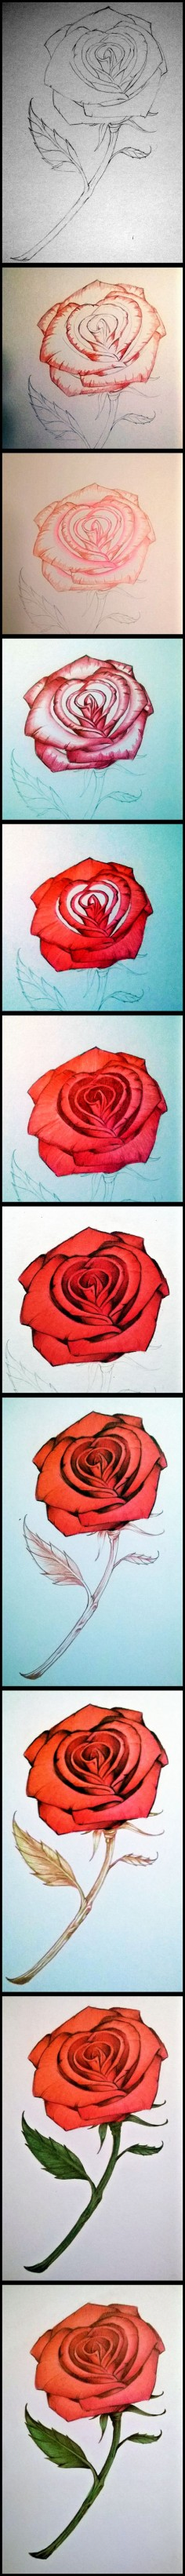 colored pencil rose